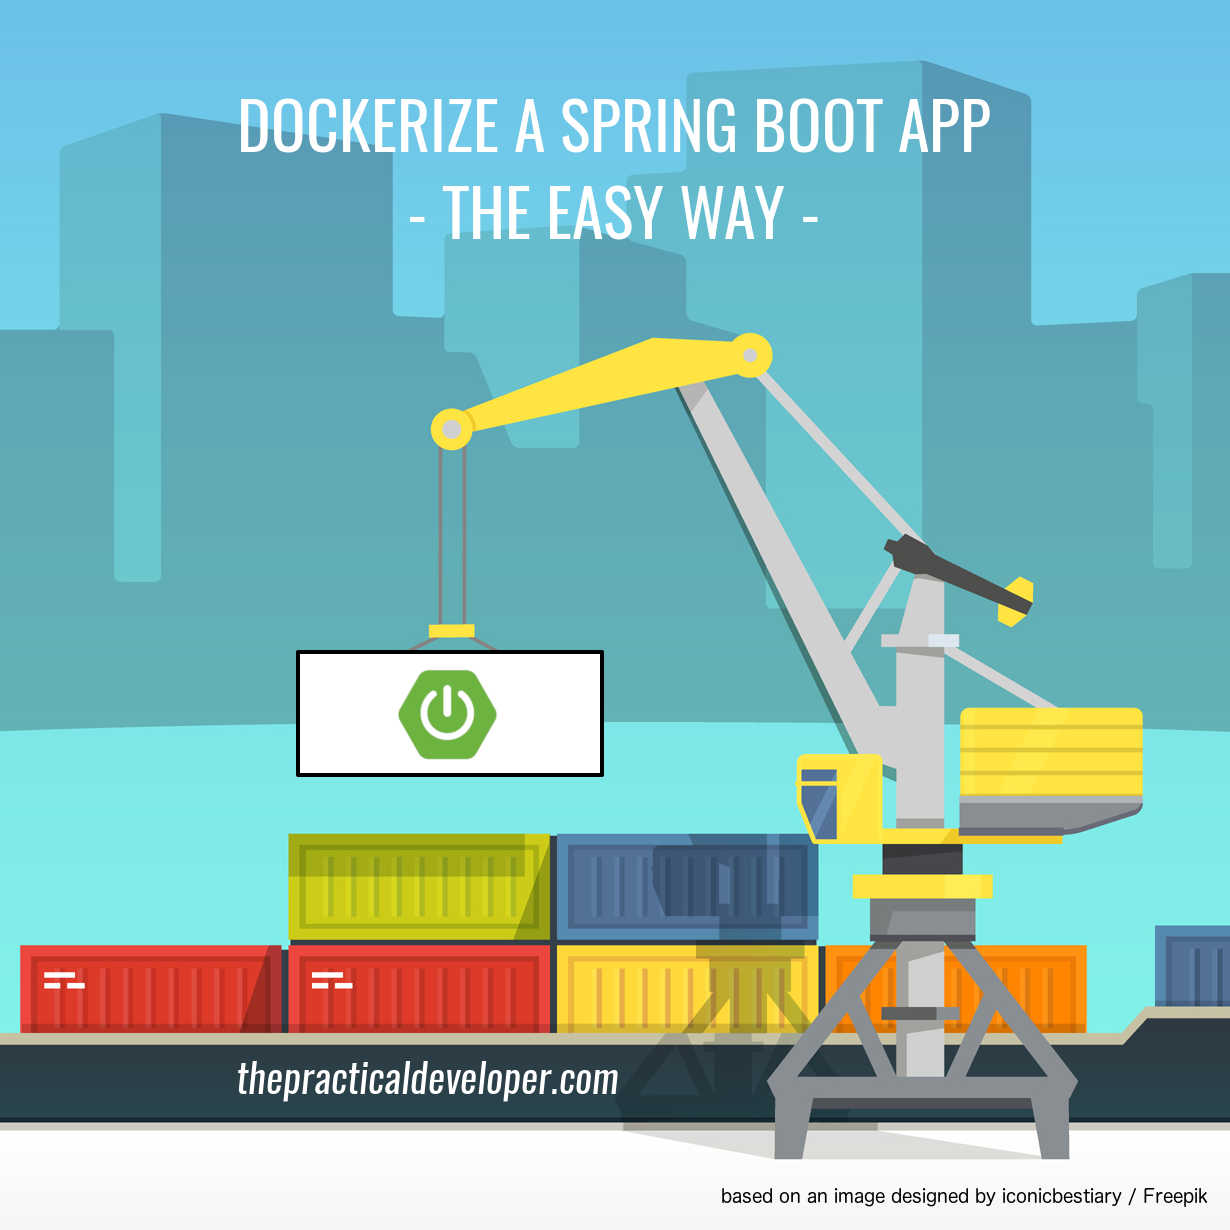 Dockerize a Spring Boot Application - The Practical Developer